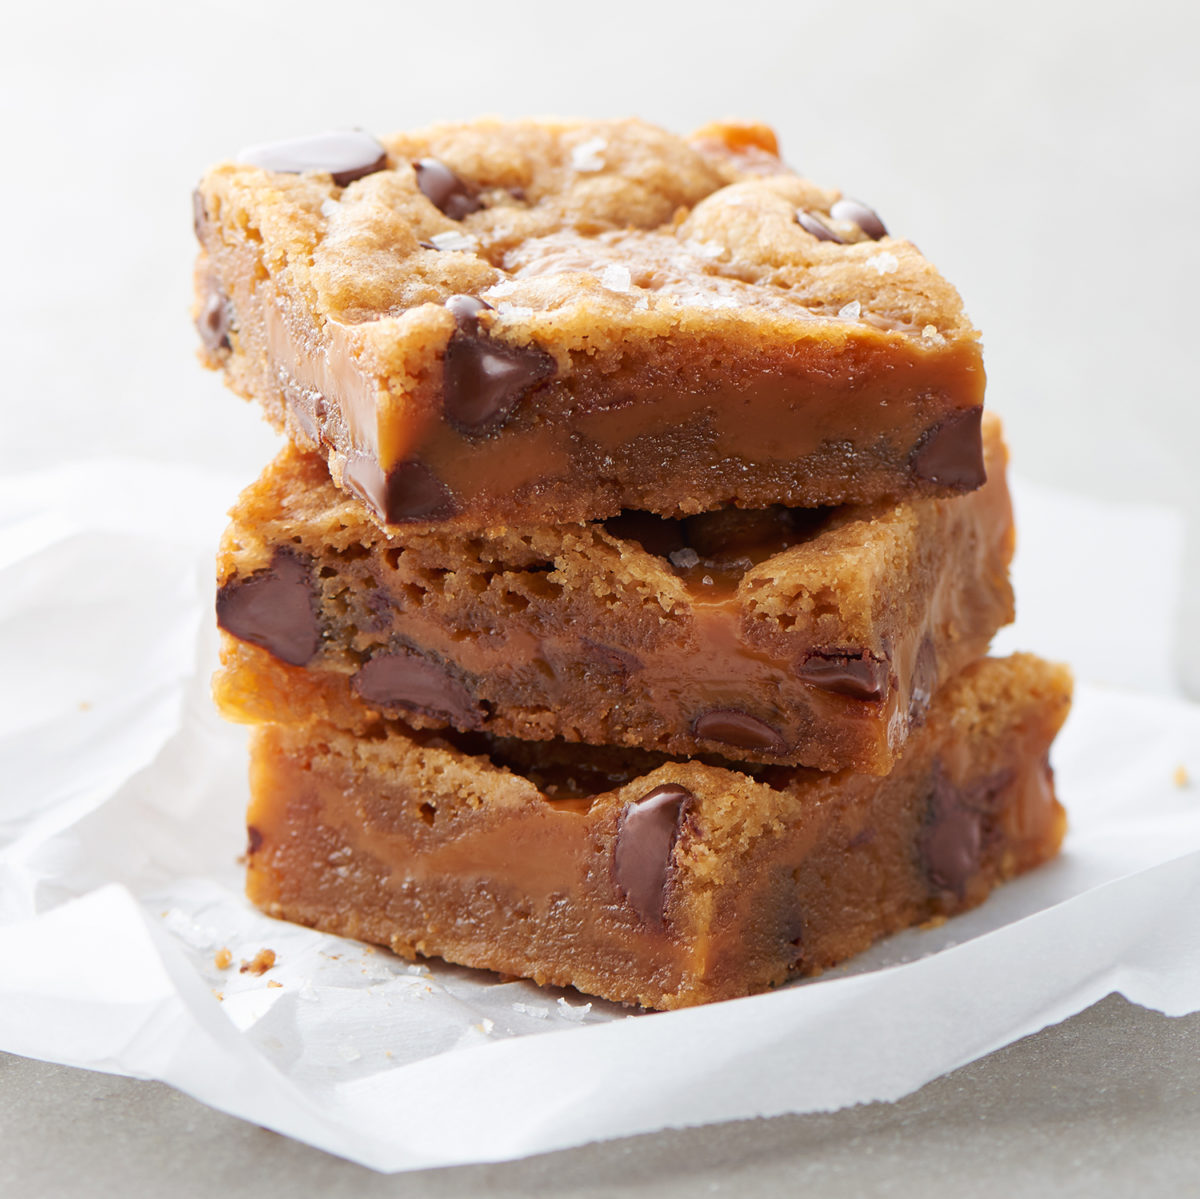 Land O'Lakes Salted Caramel Chocolate Chip Bars